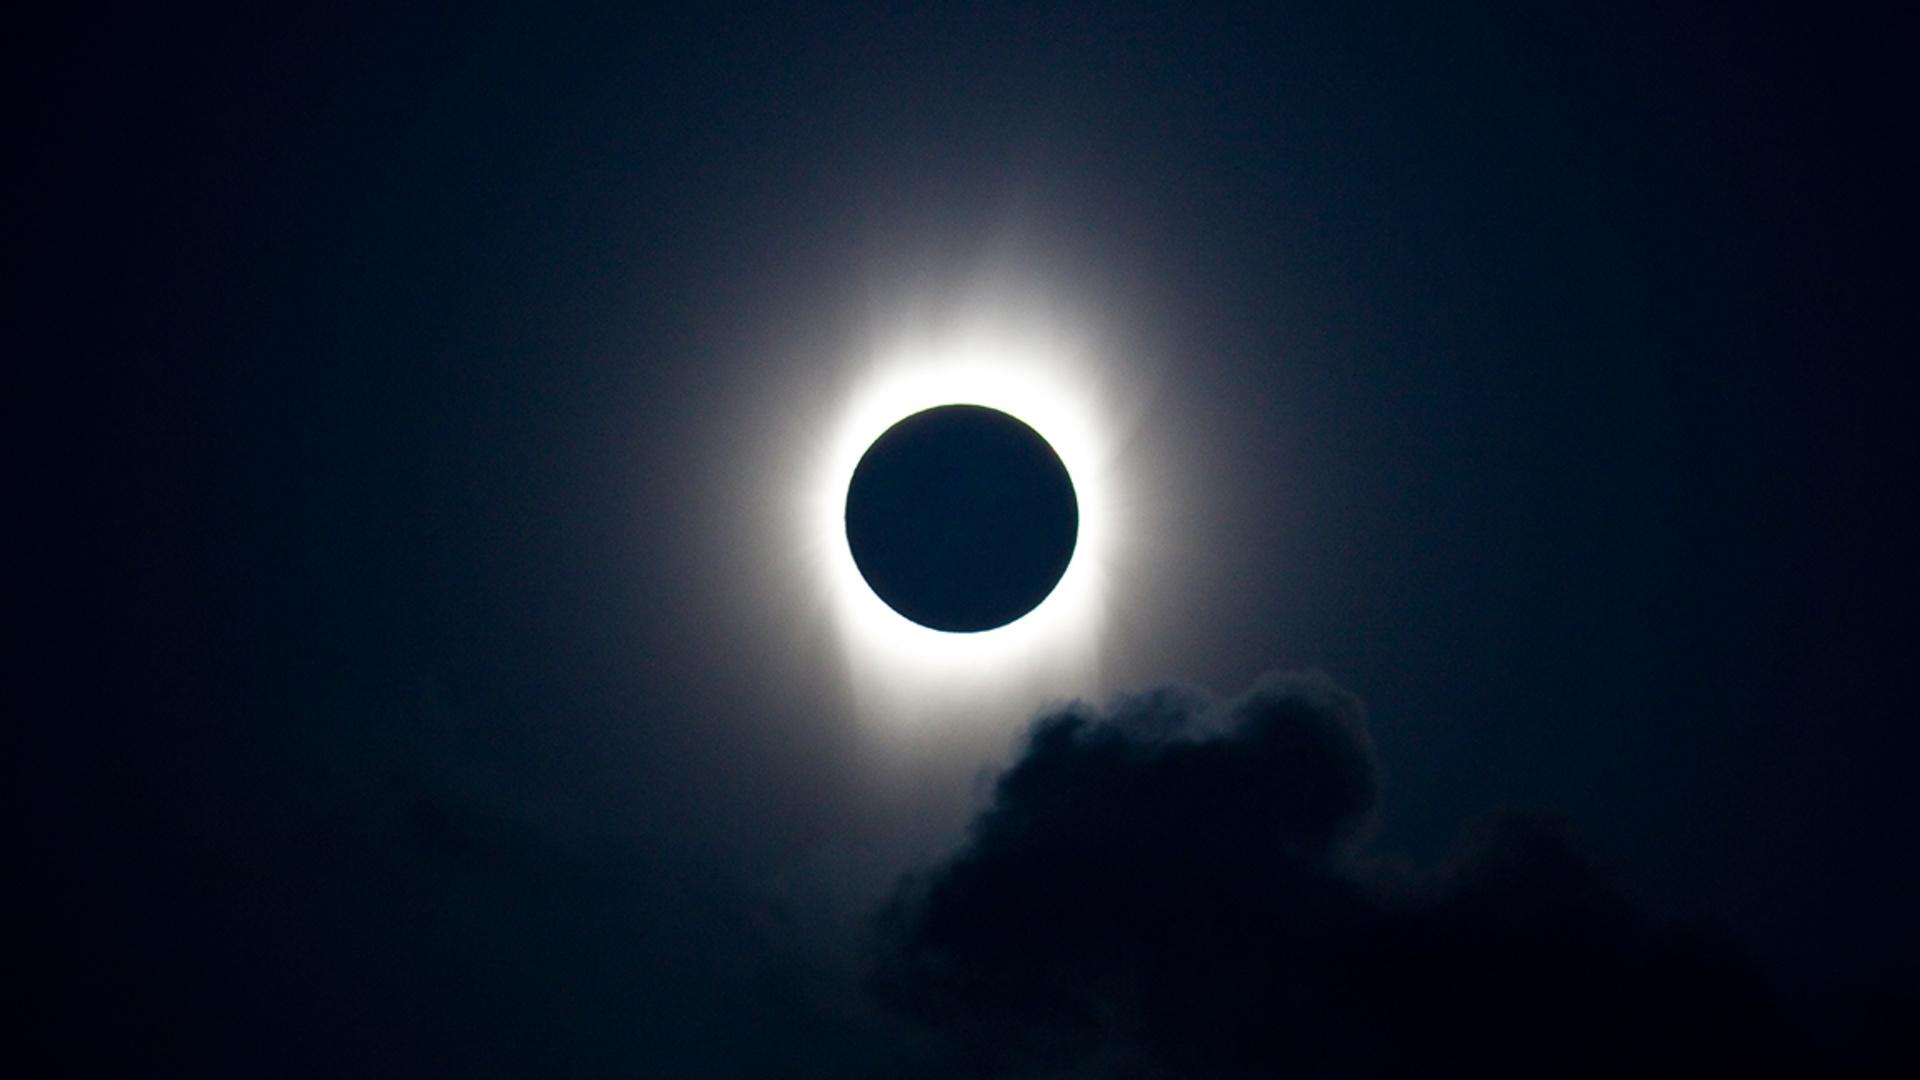 In August 2017, America Will See Its First Total Solar Eclipse Since 1979